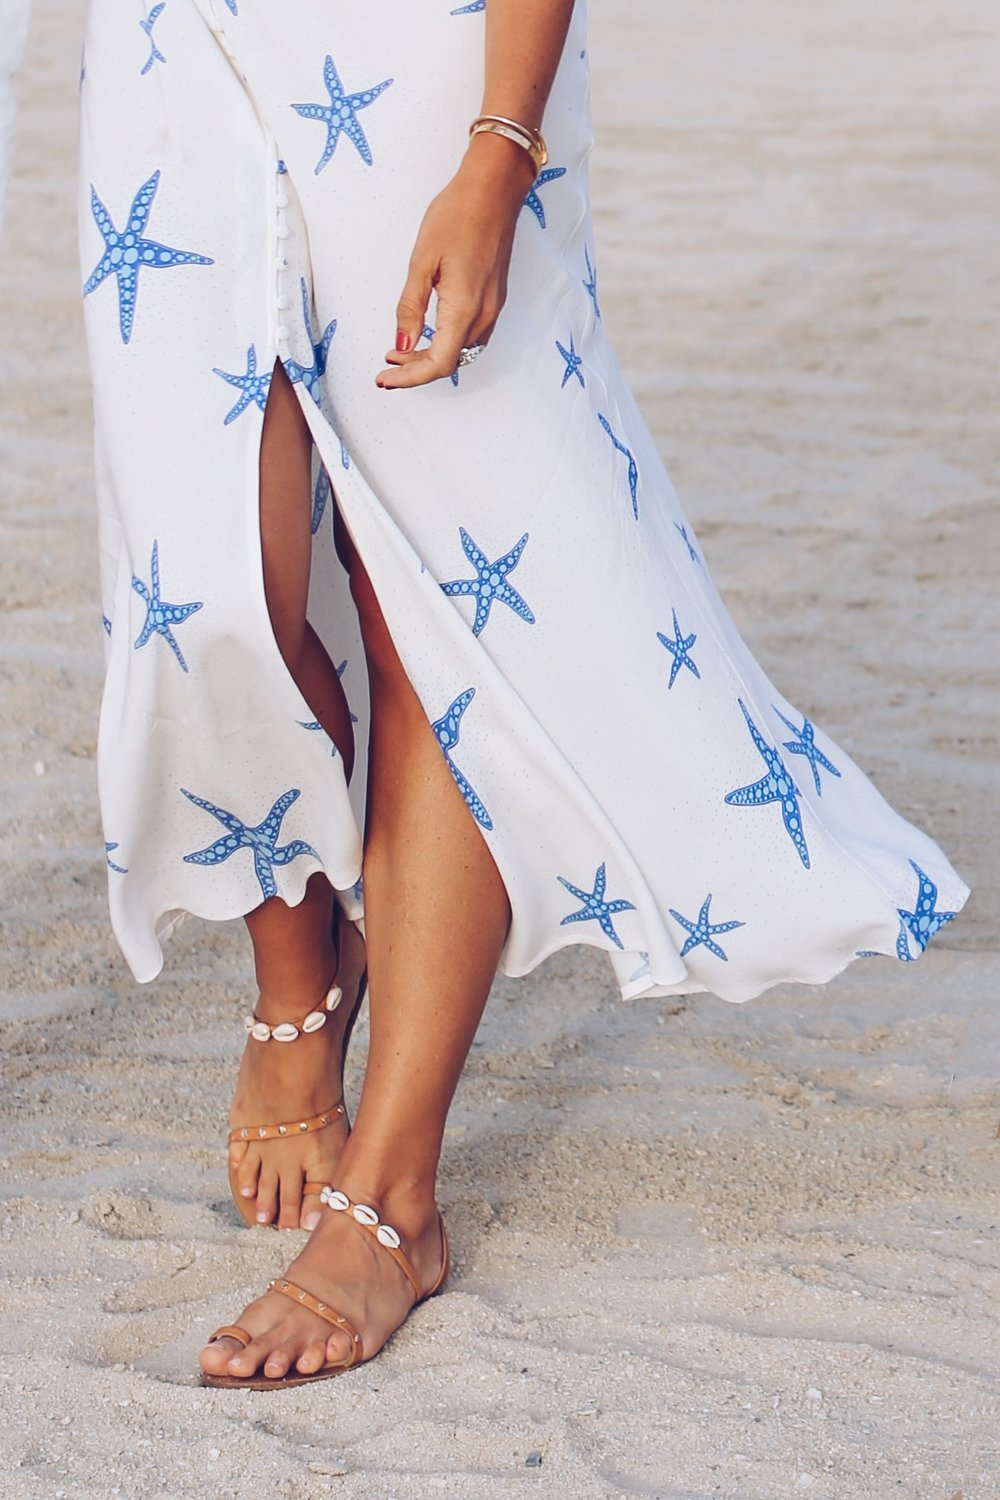 Dress by Rixo   Sandals by Ancient Greek Sandals